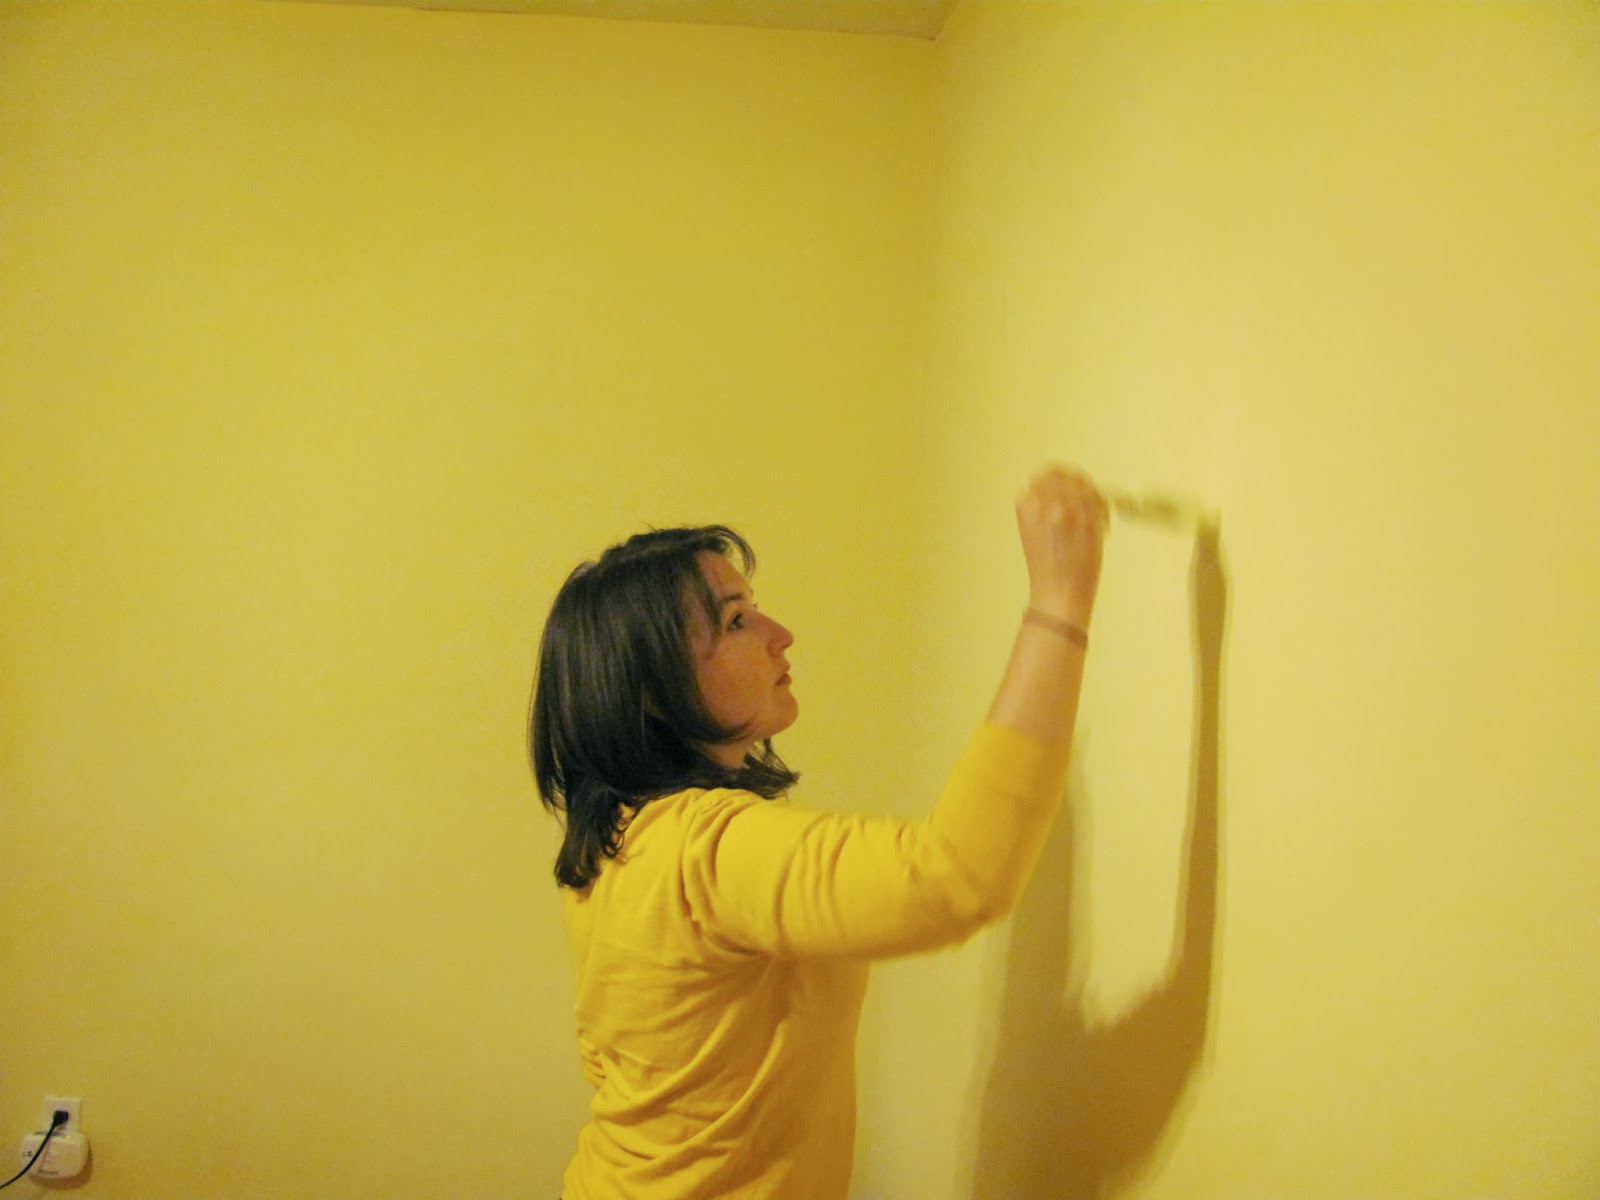 Sara touches up the paint in the bedroom after taking down the pictures on the wall